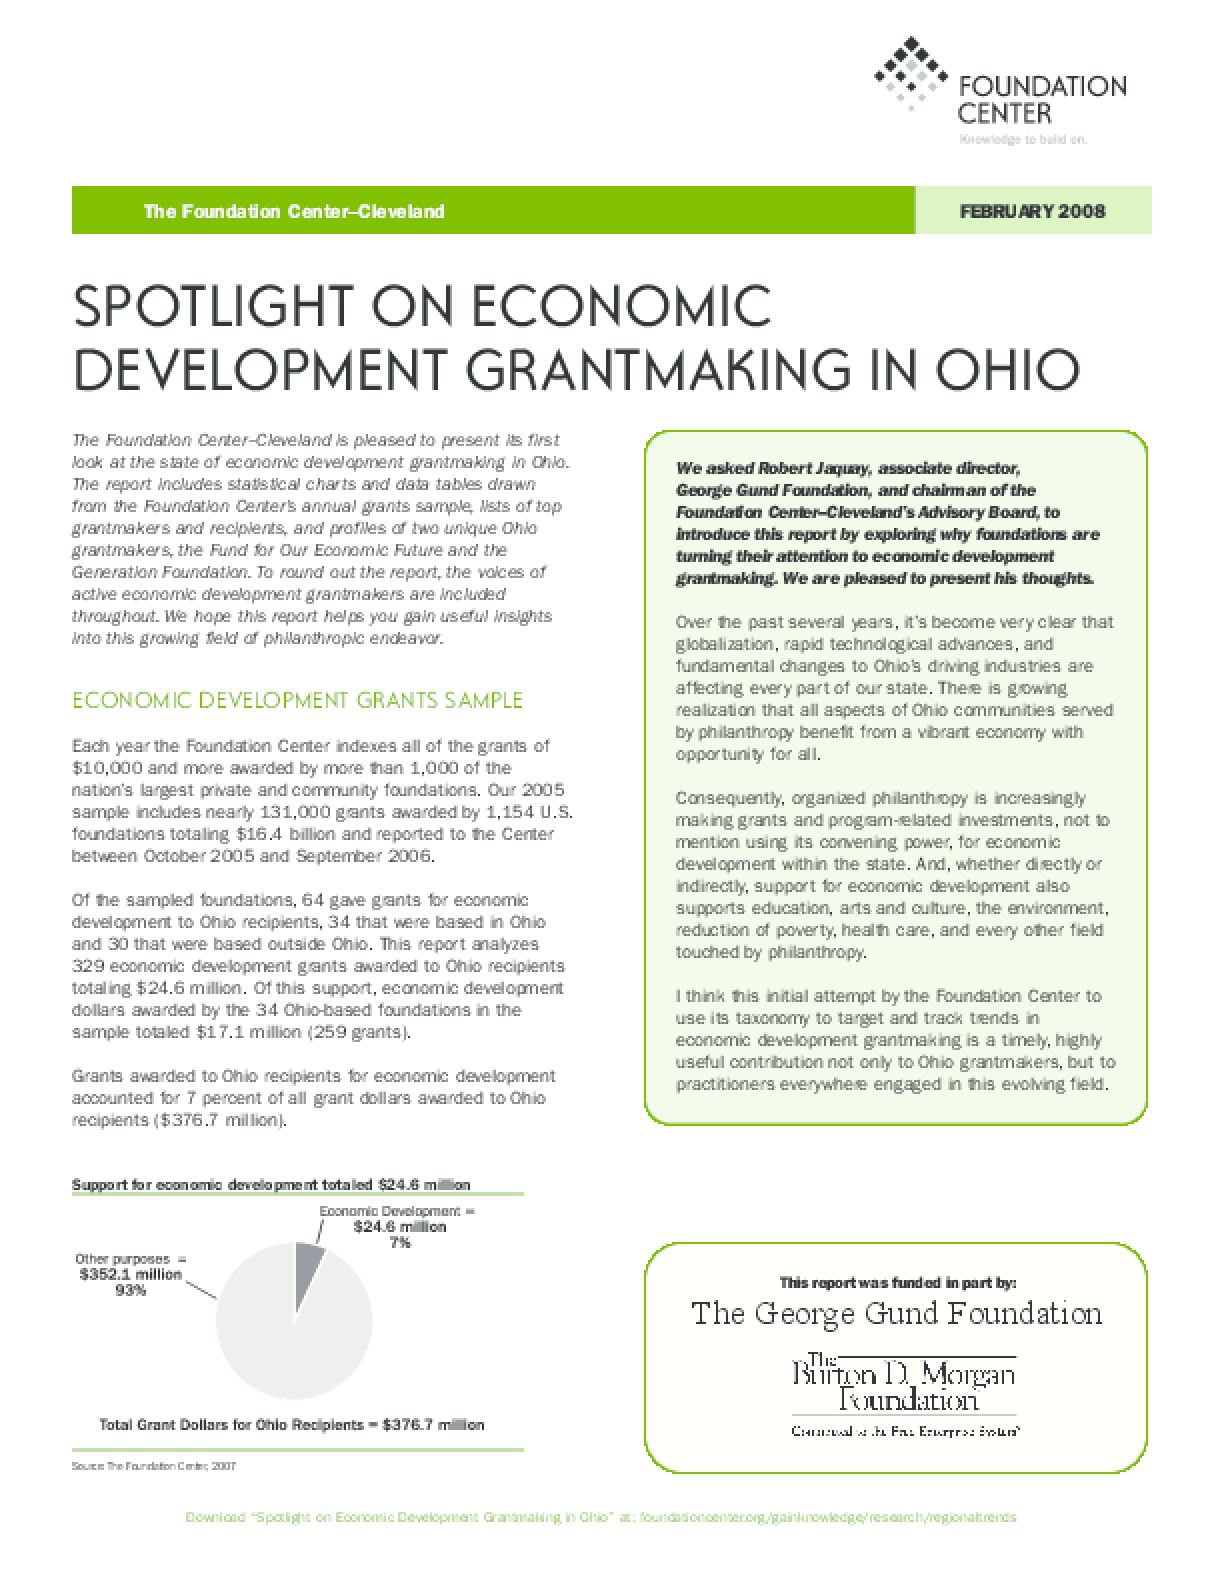 Spotlight on Economic Development Grantmaking in Ohio 2008